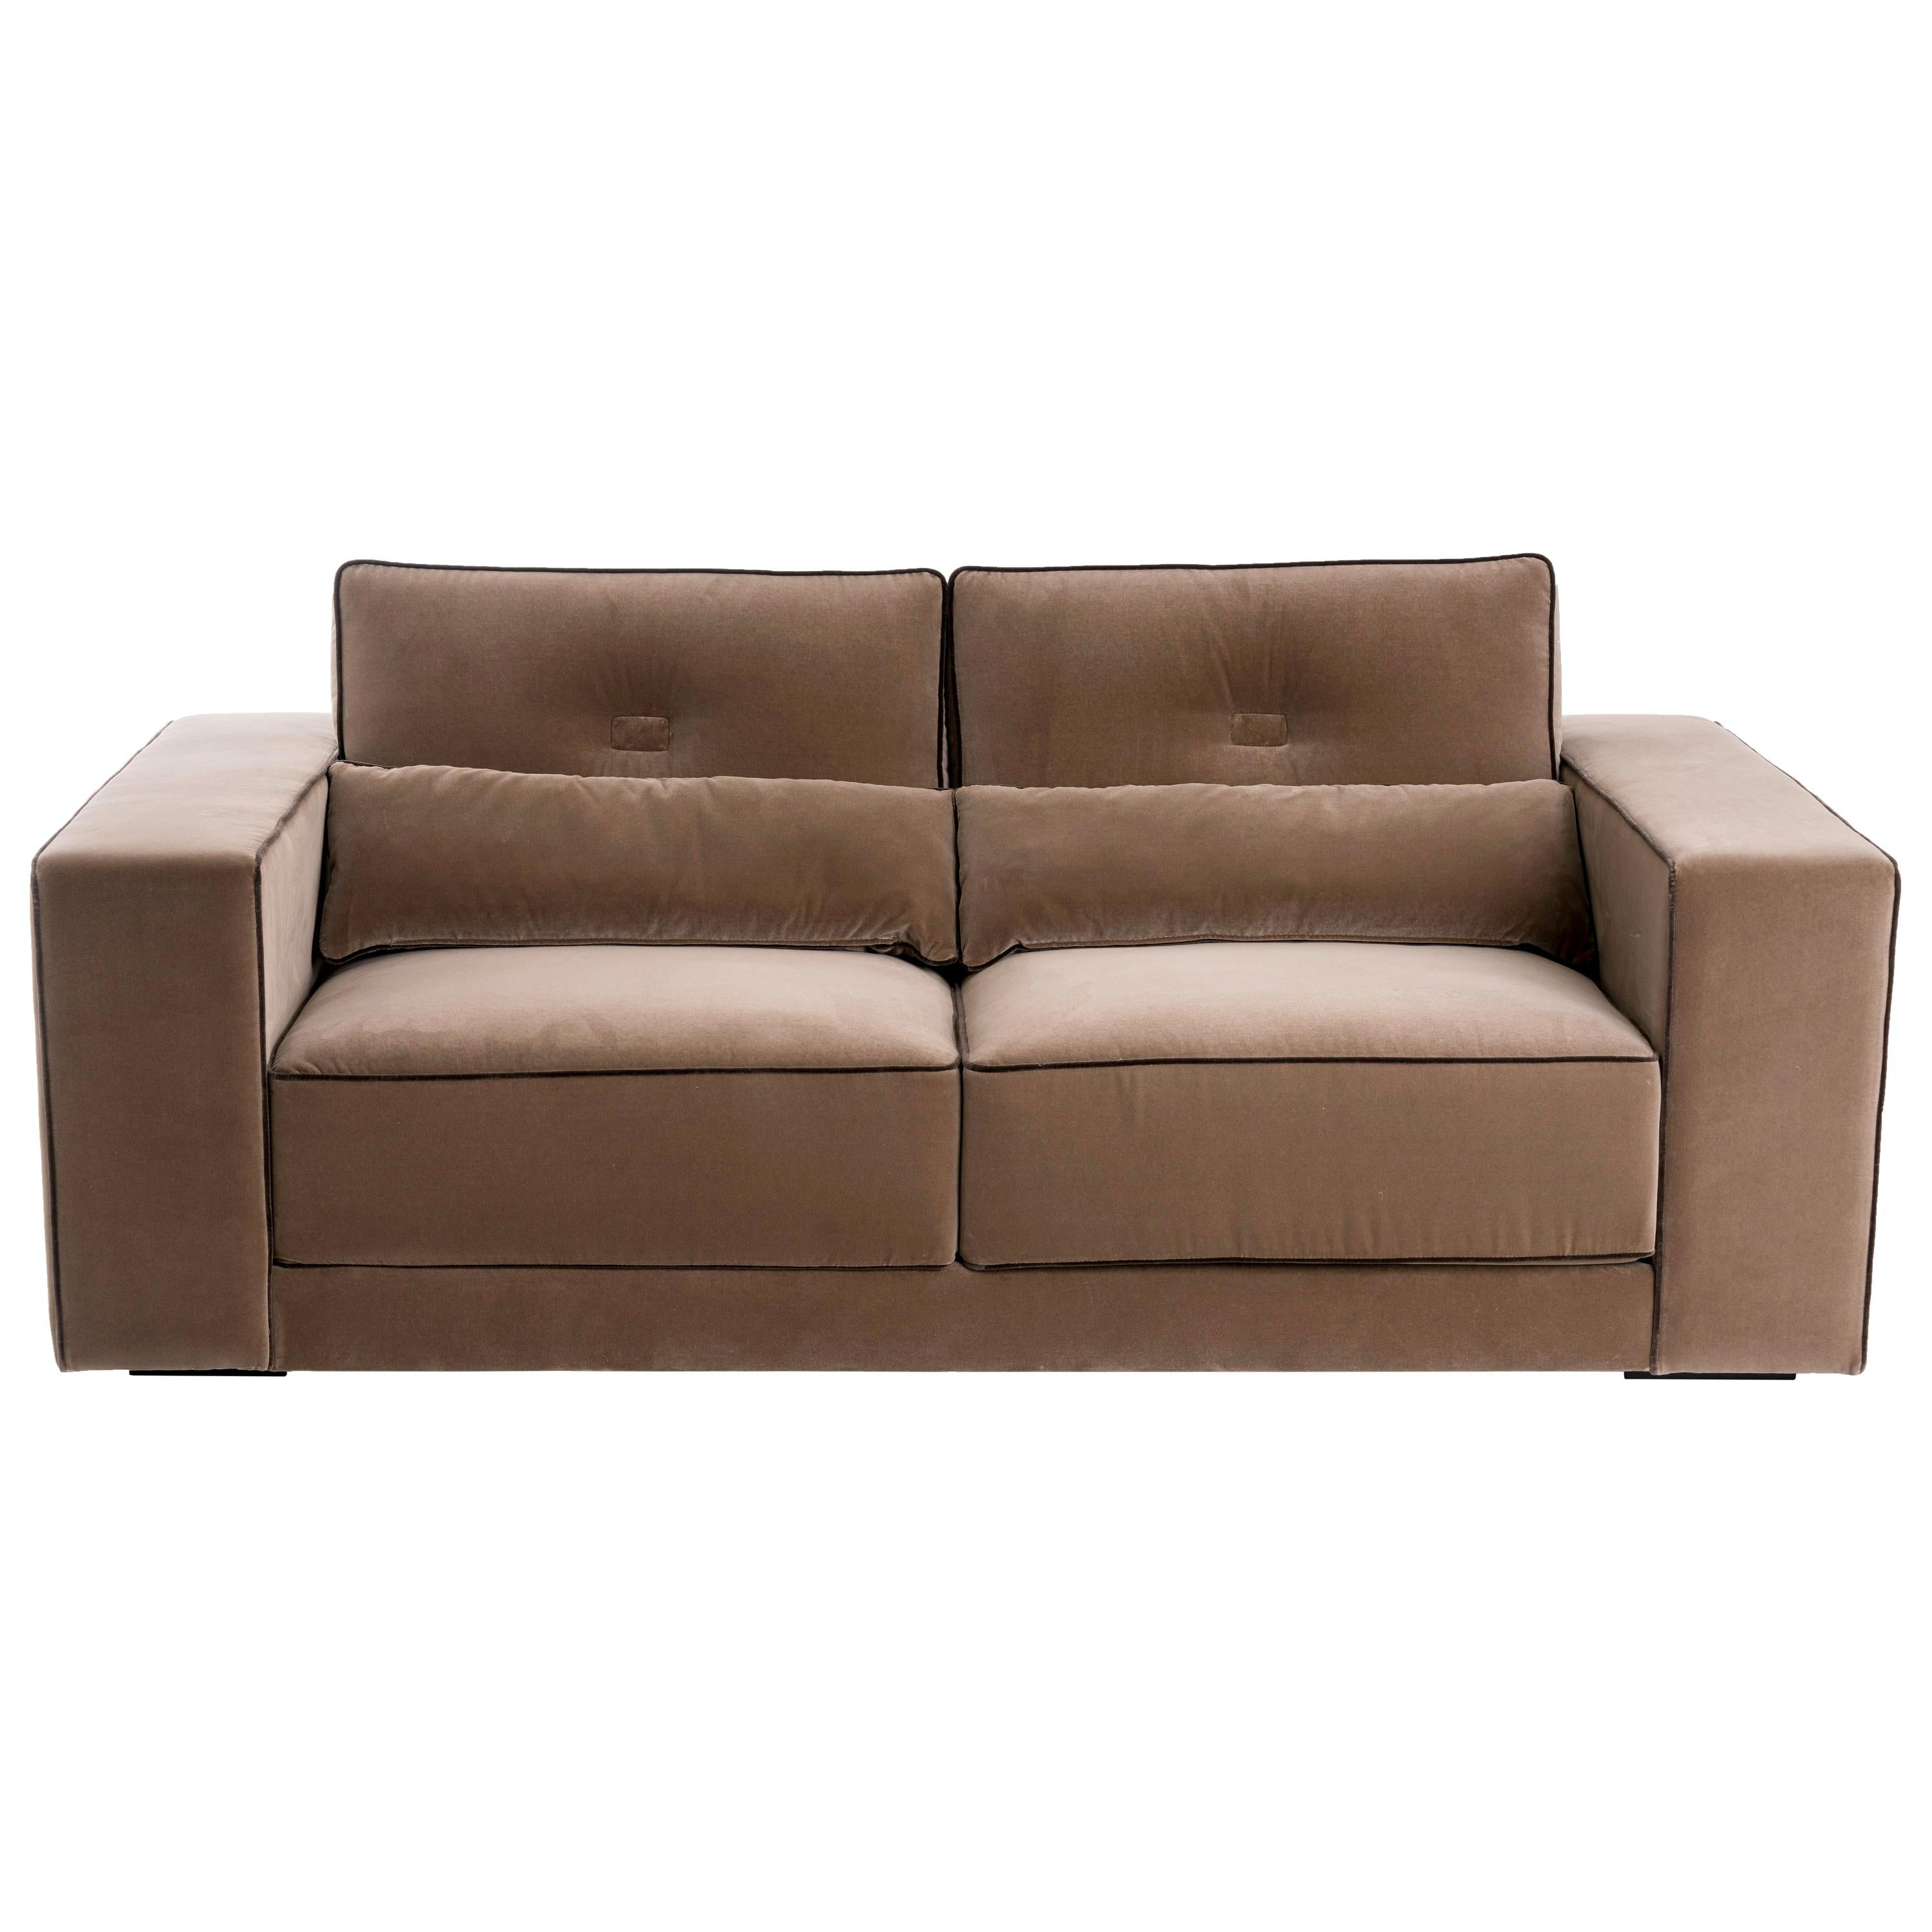 Capricho Midcentury Design Sofa with Contrasting Piping Details